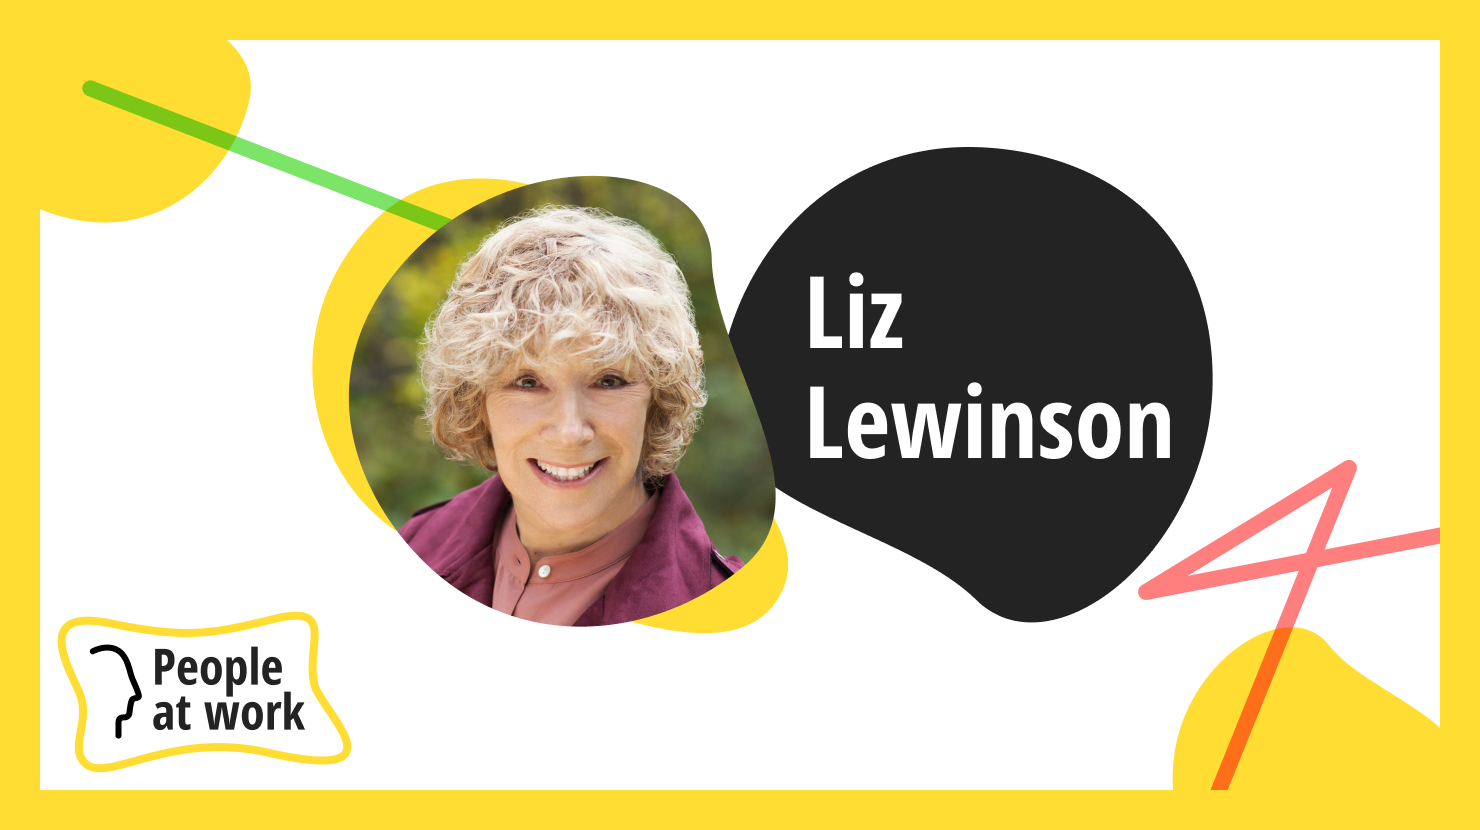 Prepare for change with Liz Lewinson